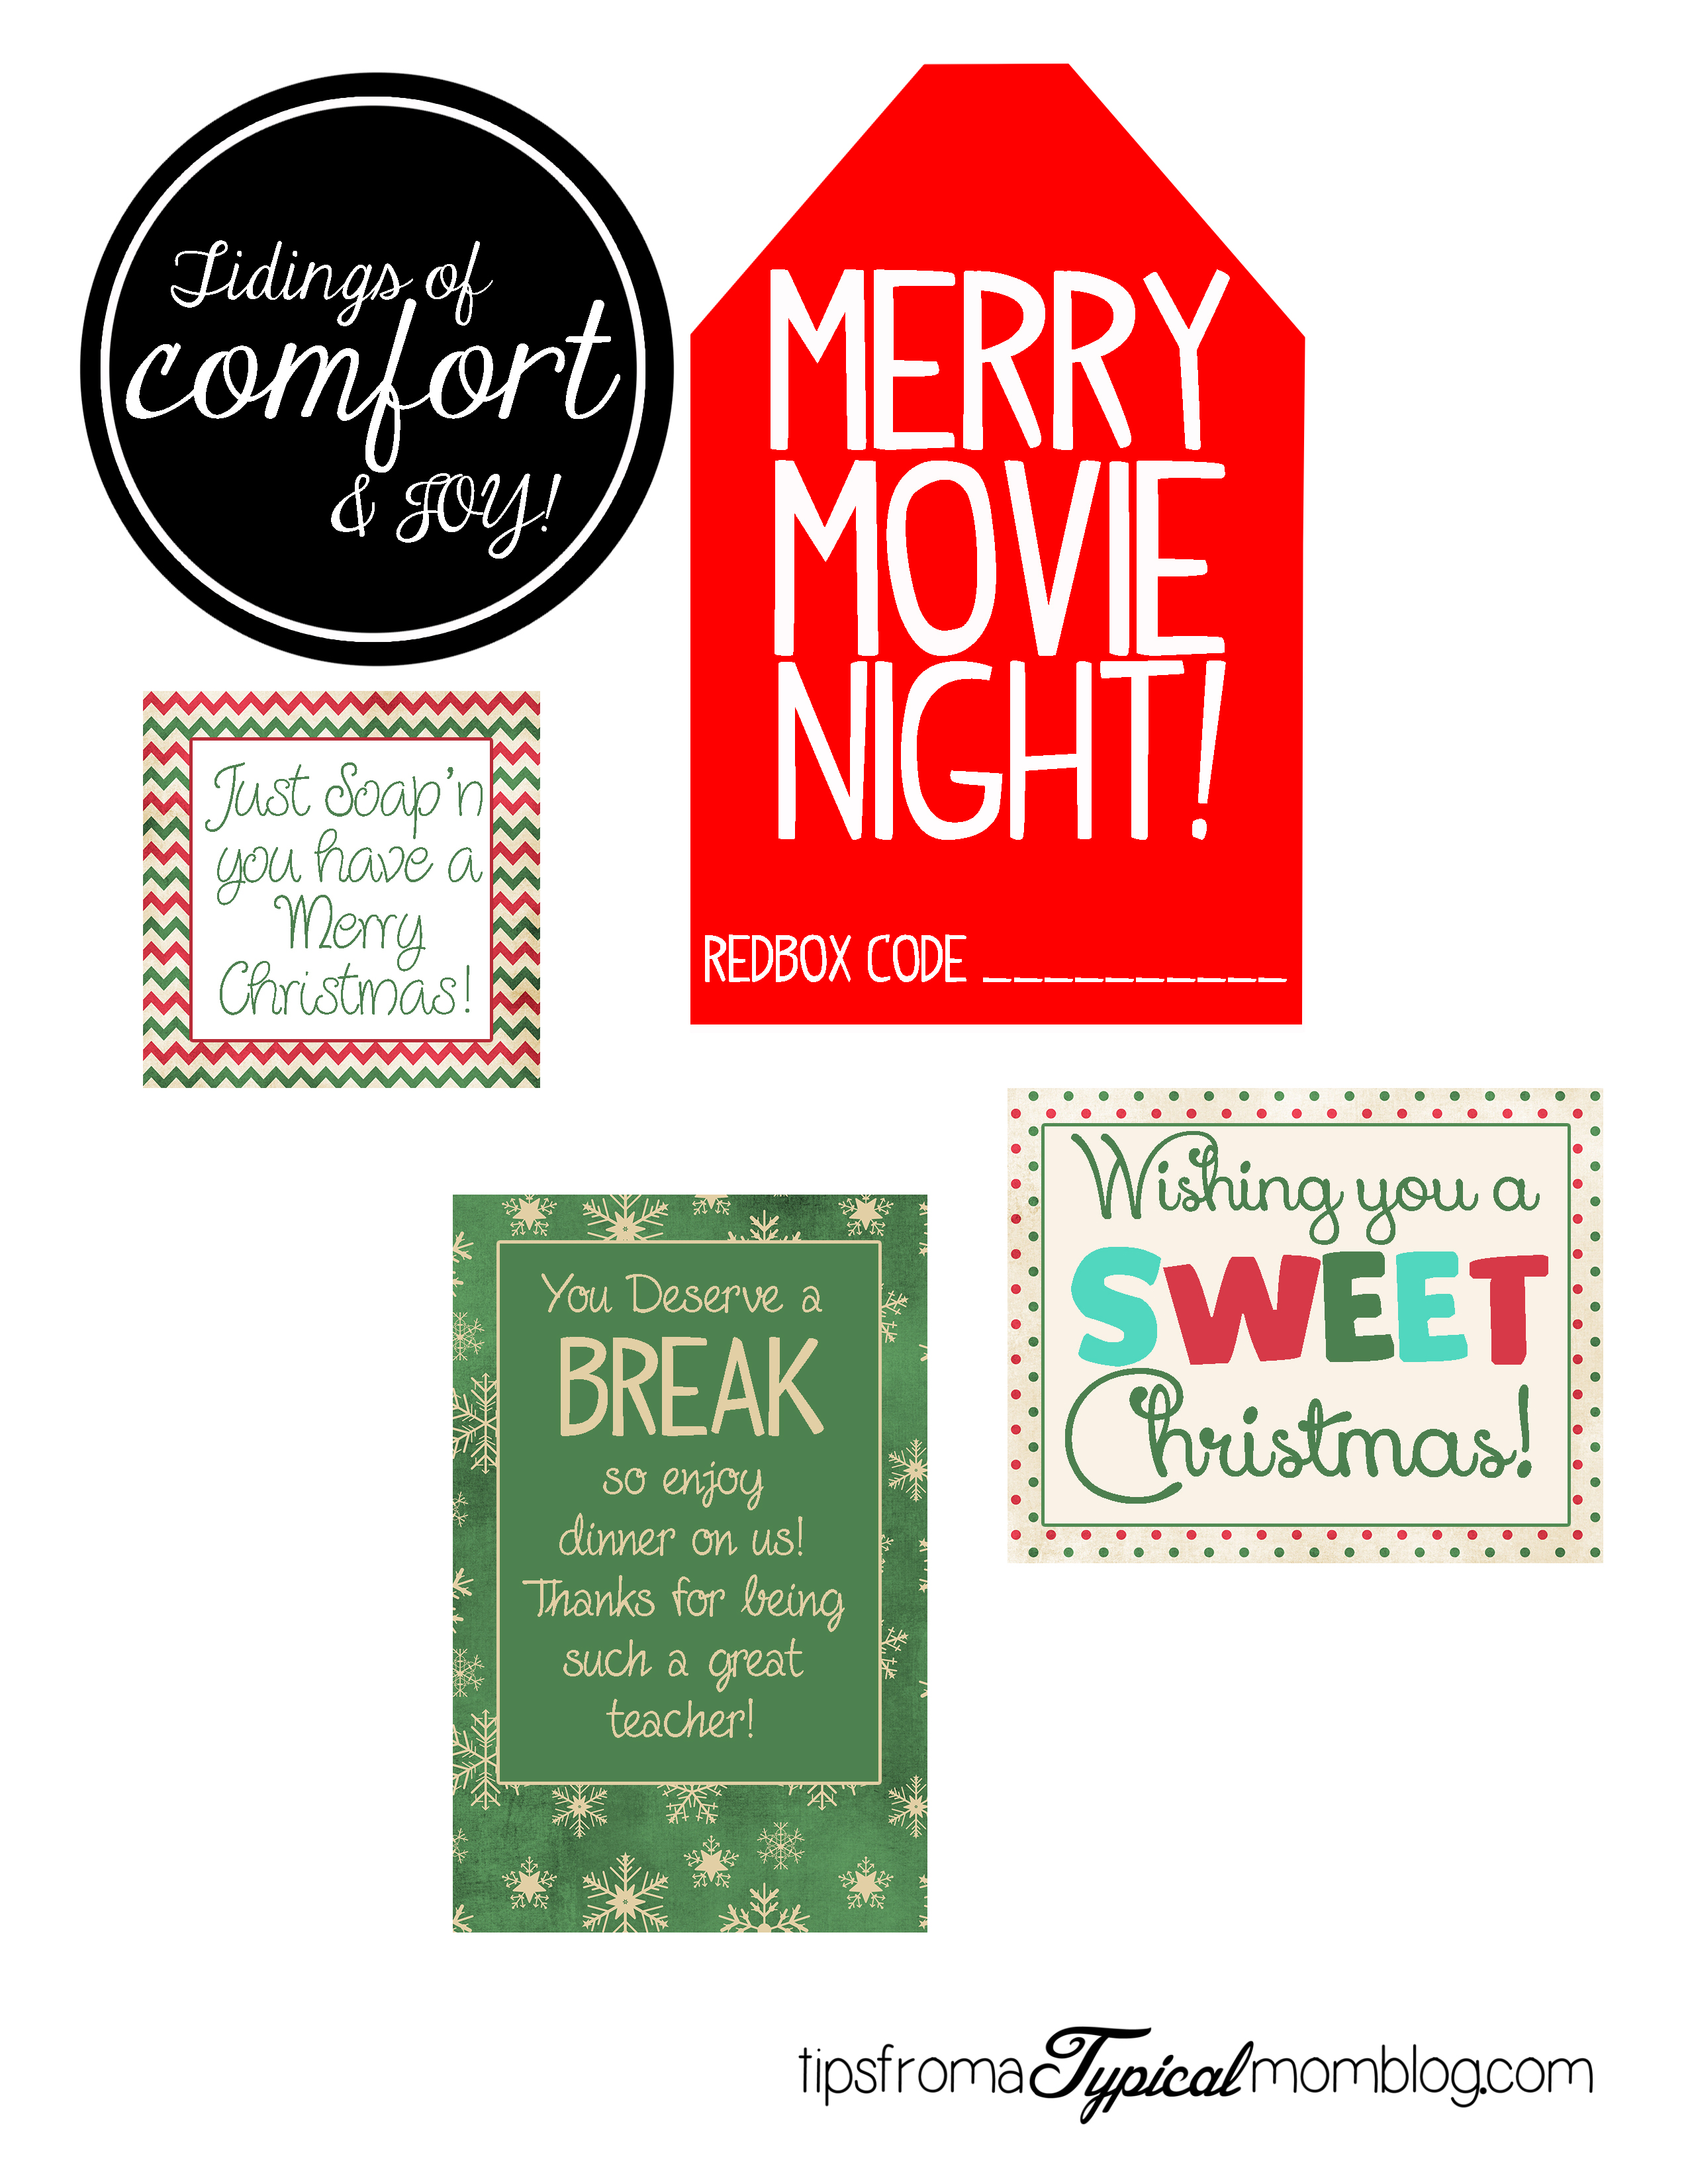 photograph about We Wash You a Merry Christmas Free Printable called 8 Simple and Simple Trainer Xmas Present Designs with Printable